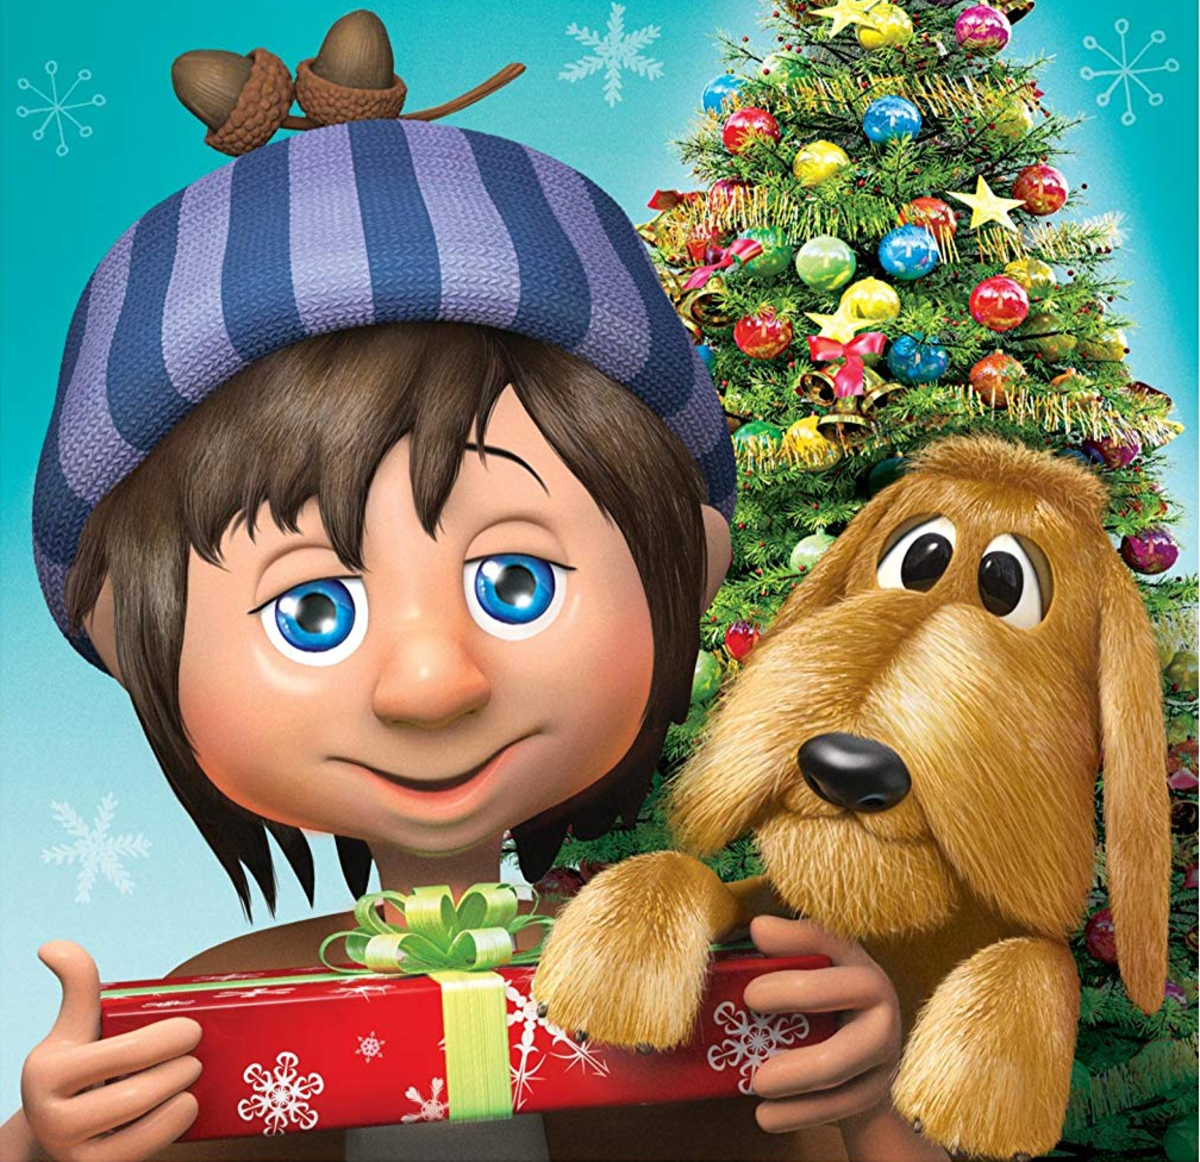 Rankin/Bass Retrospective - The First Christmas: The Story of the First Christmas Snow